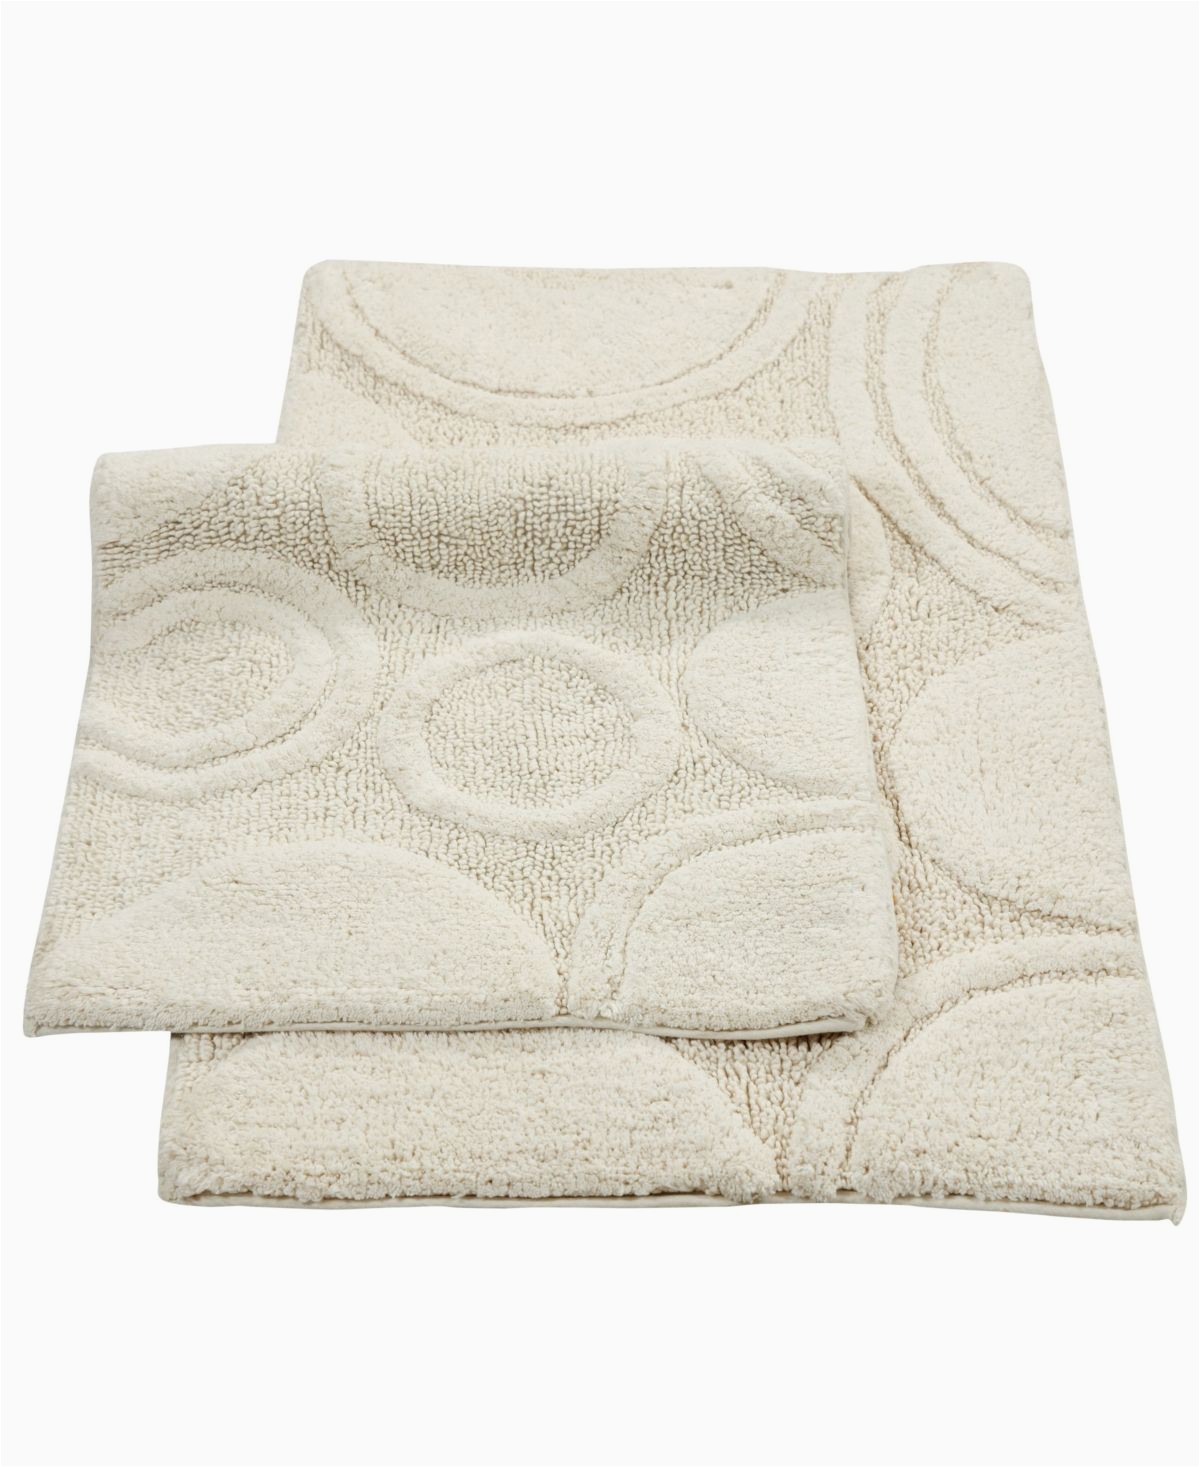 "40 X 24 Bath Rug Perthshire Platinum Collection orbit 17"" X 24"" and 24"" X 40"